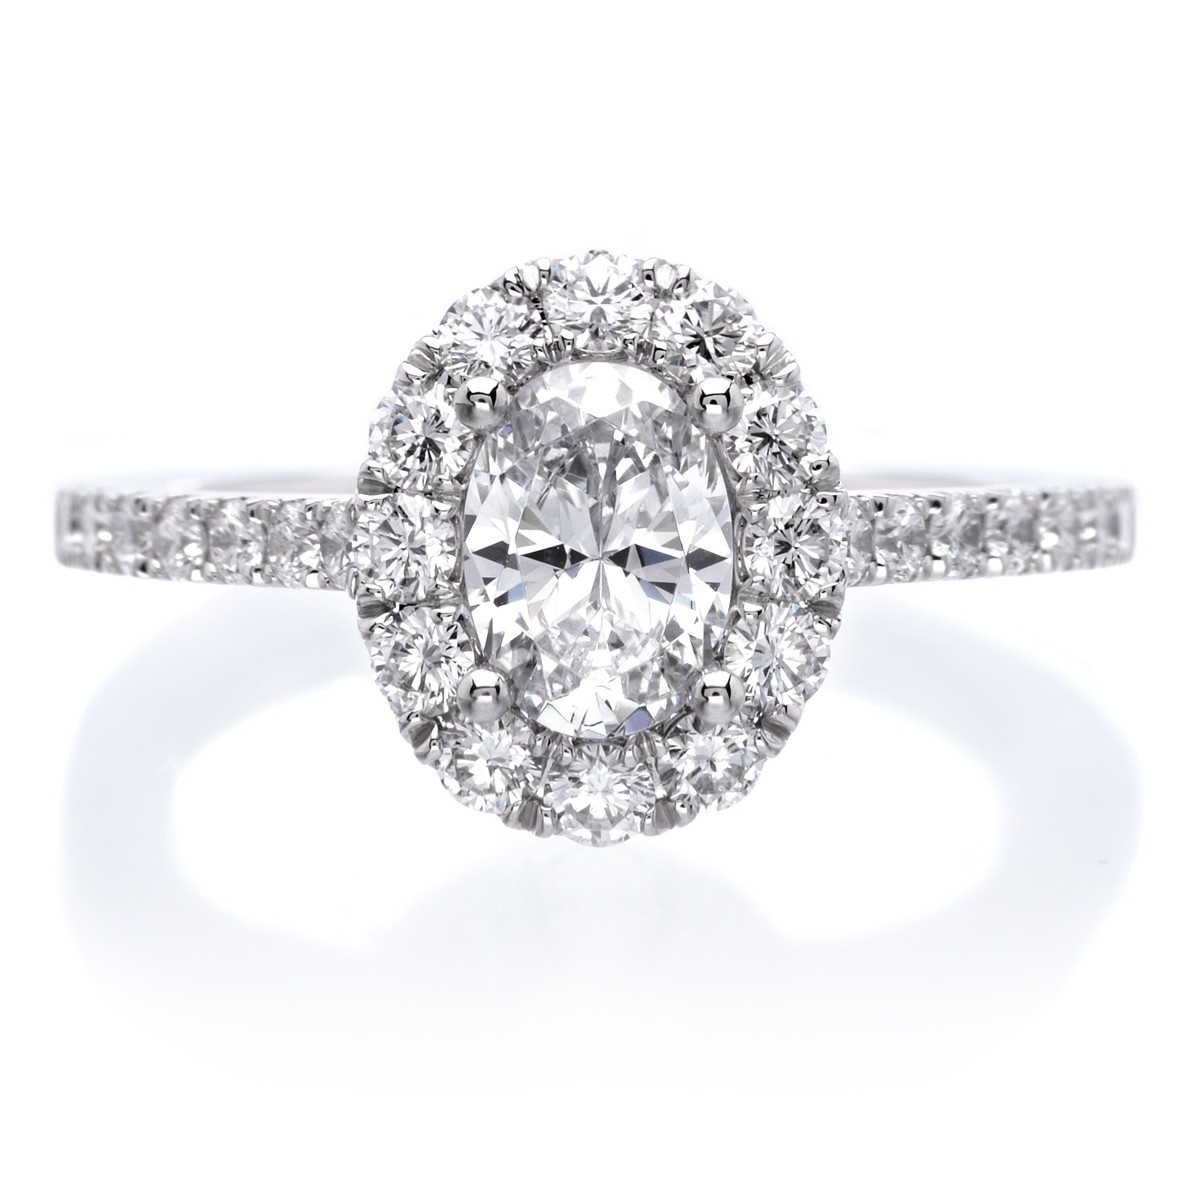 Sylivie classic halo diamond engagement ring